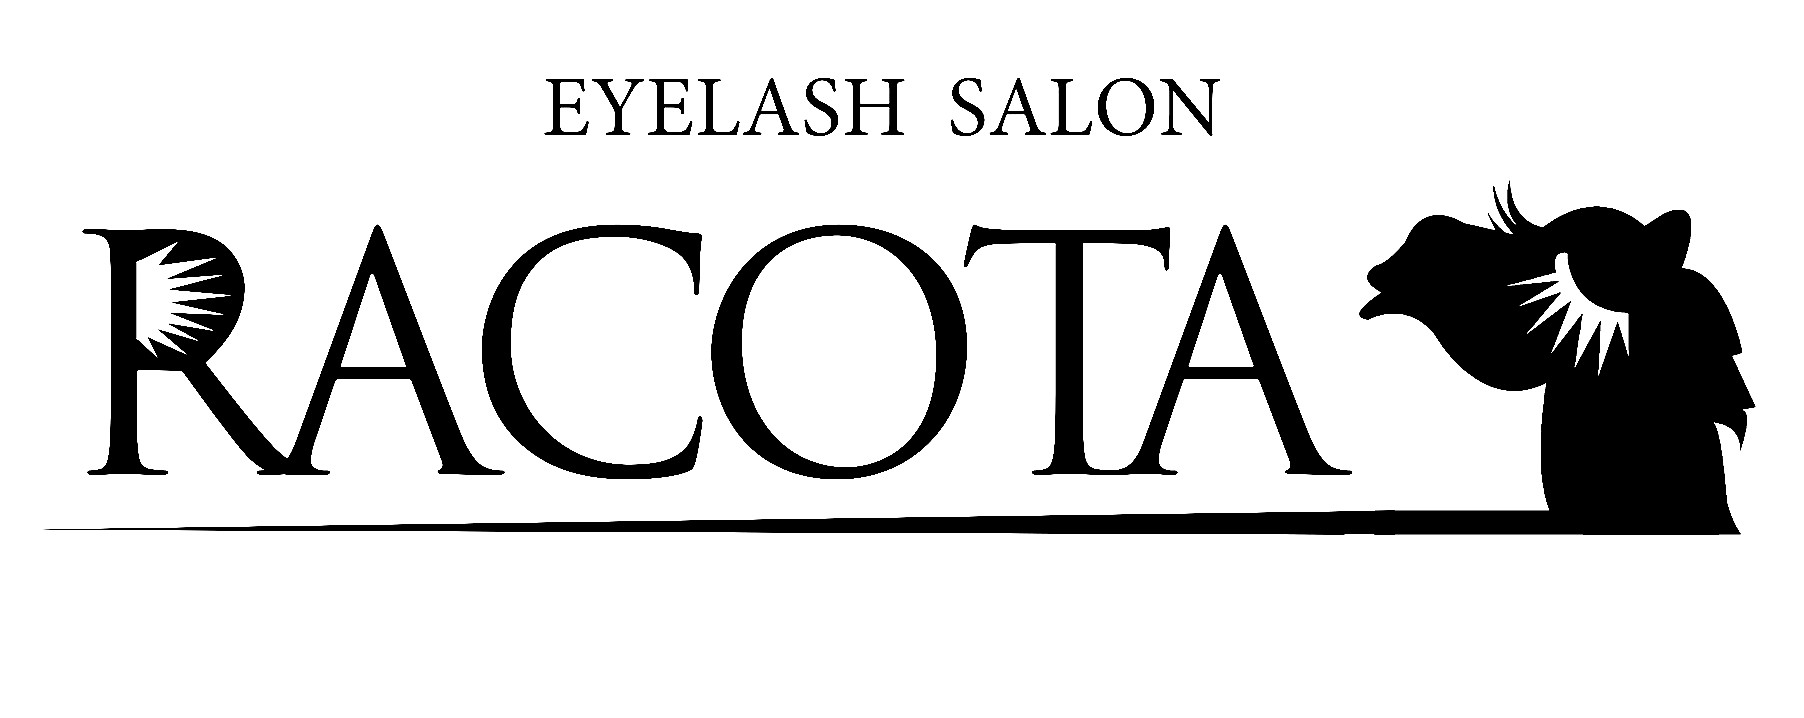 eyelash salon RACOTA